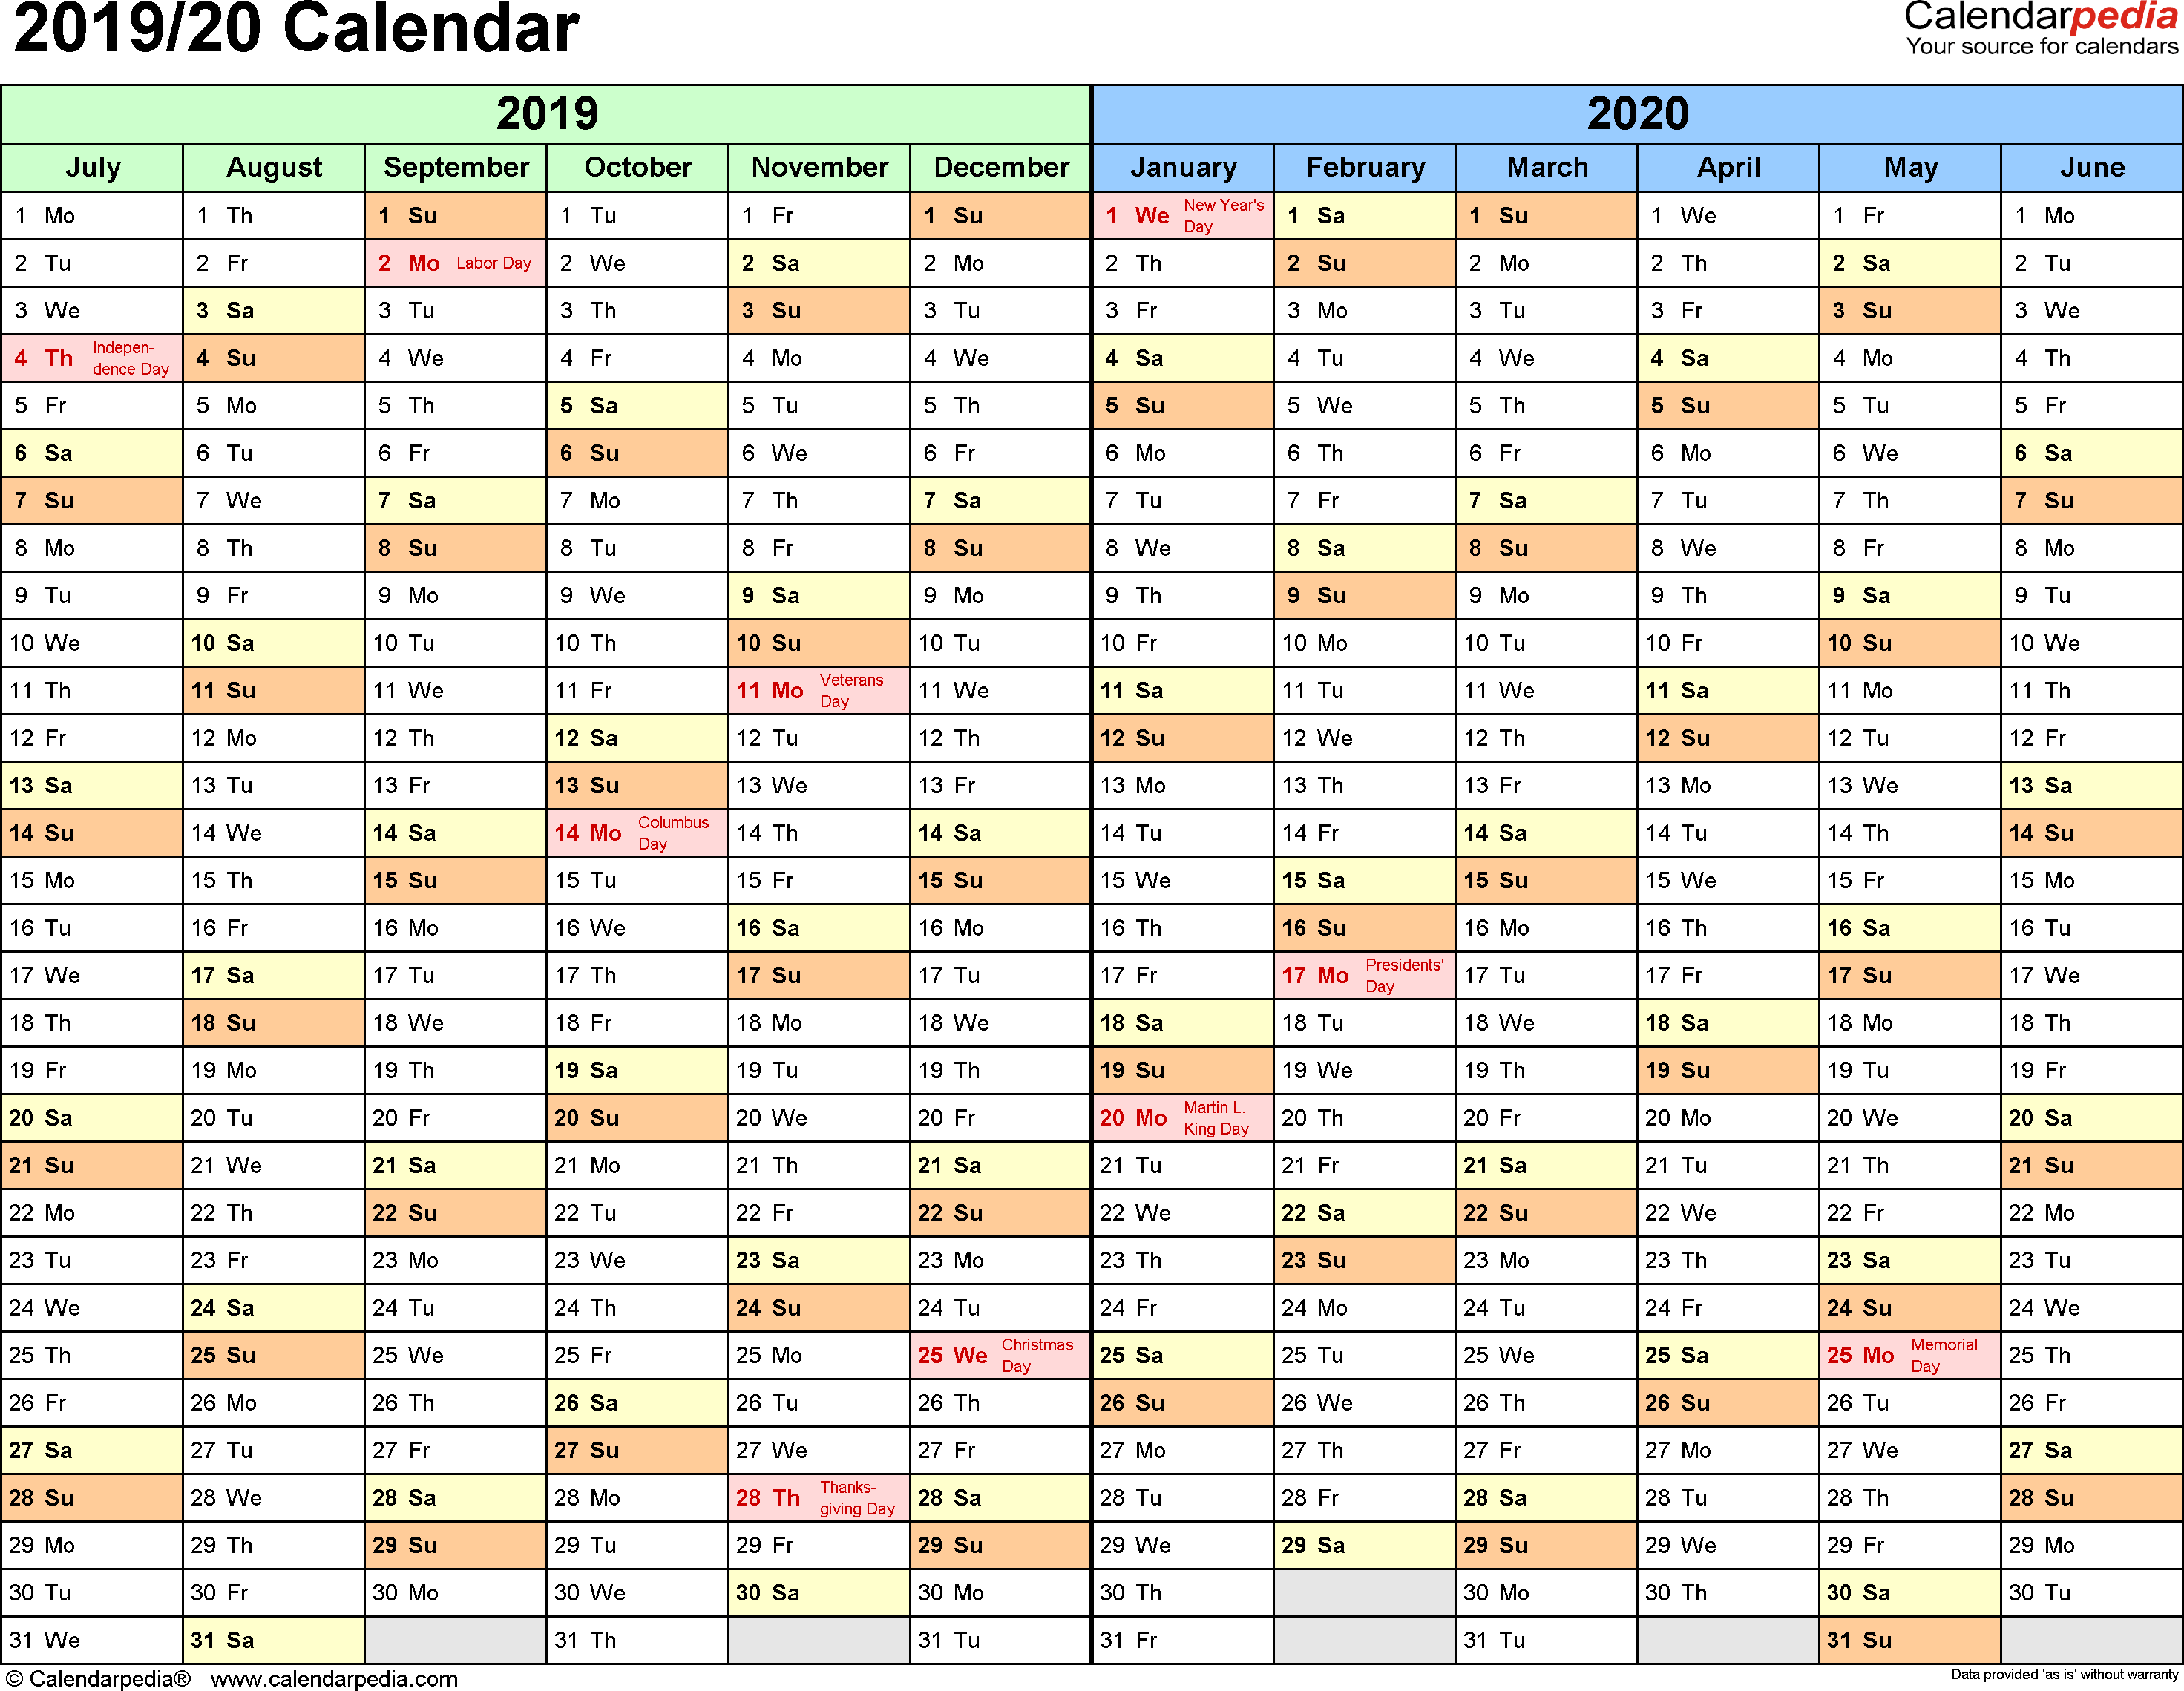 Year Calendar 2019 Word Template With Split 20 July To June Templates